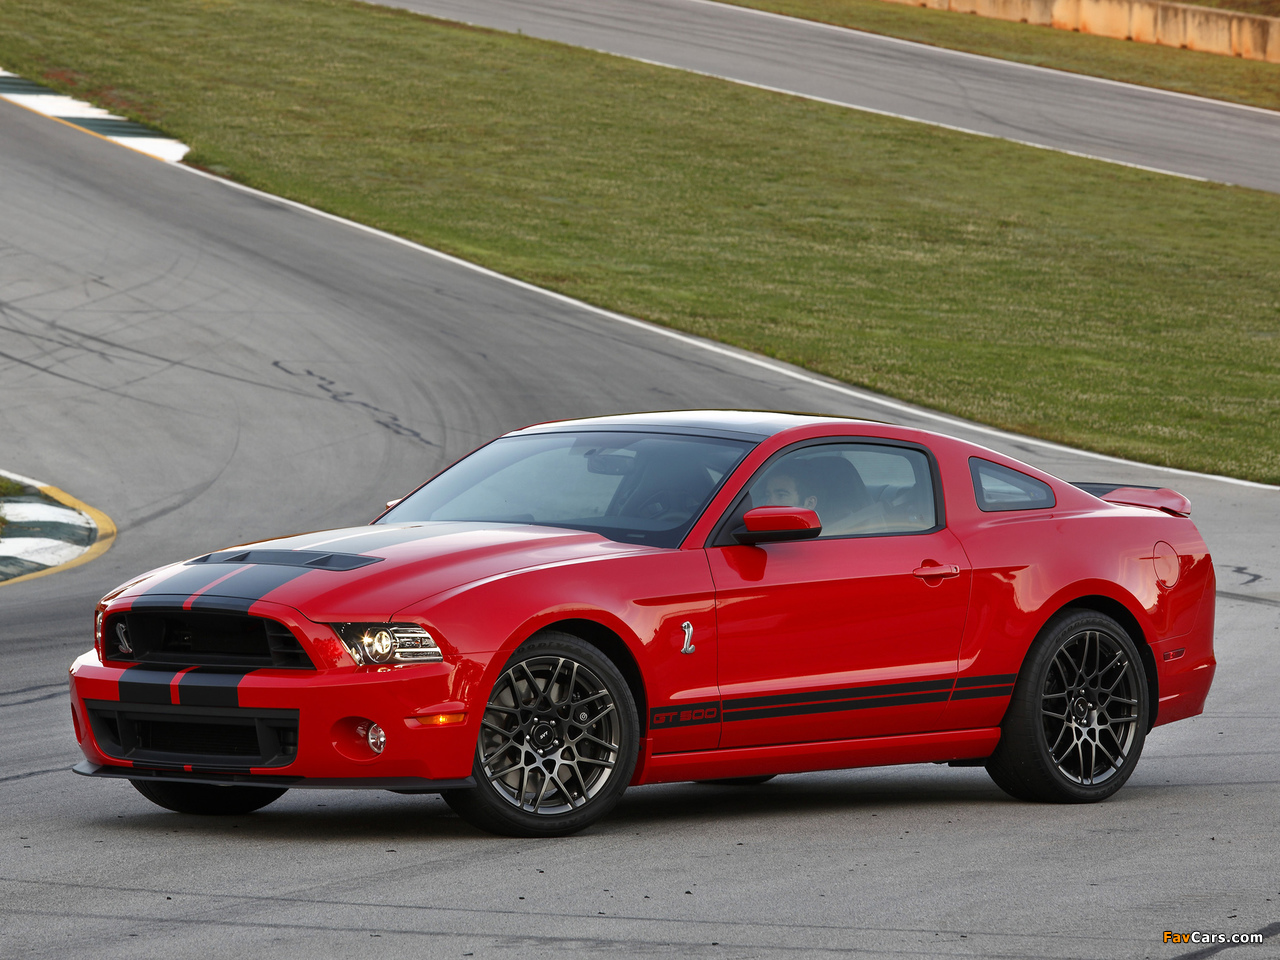 Shelby Gt500 Svt 2012 Wallpapers 1280x960